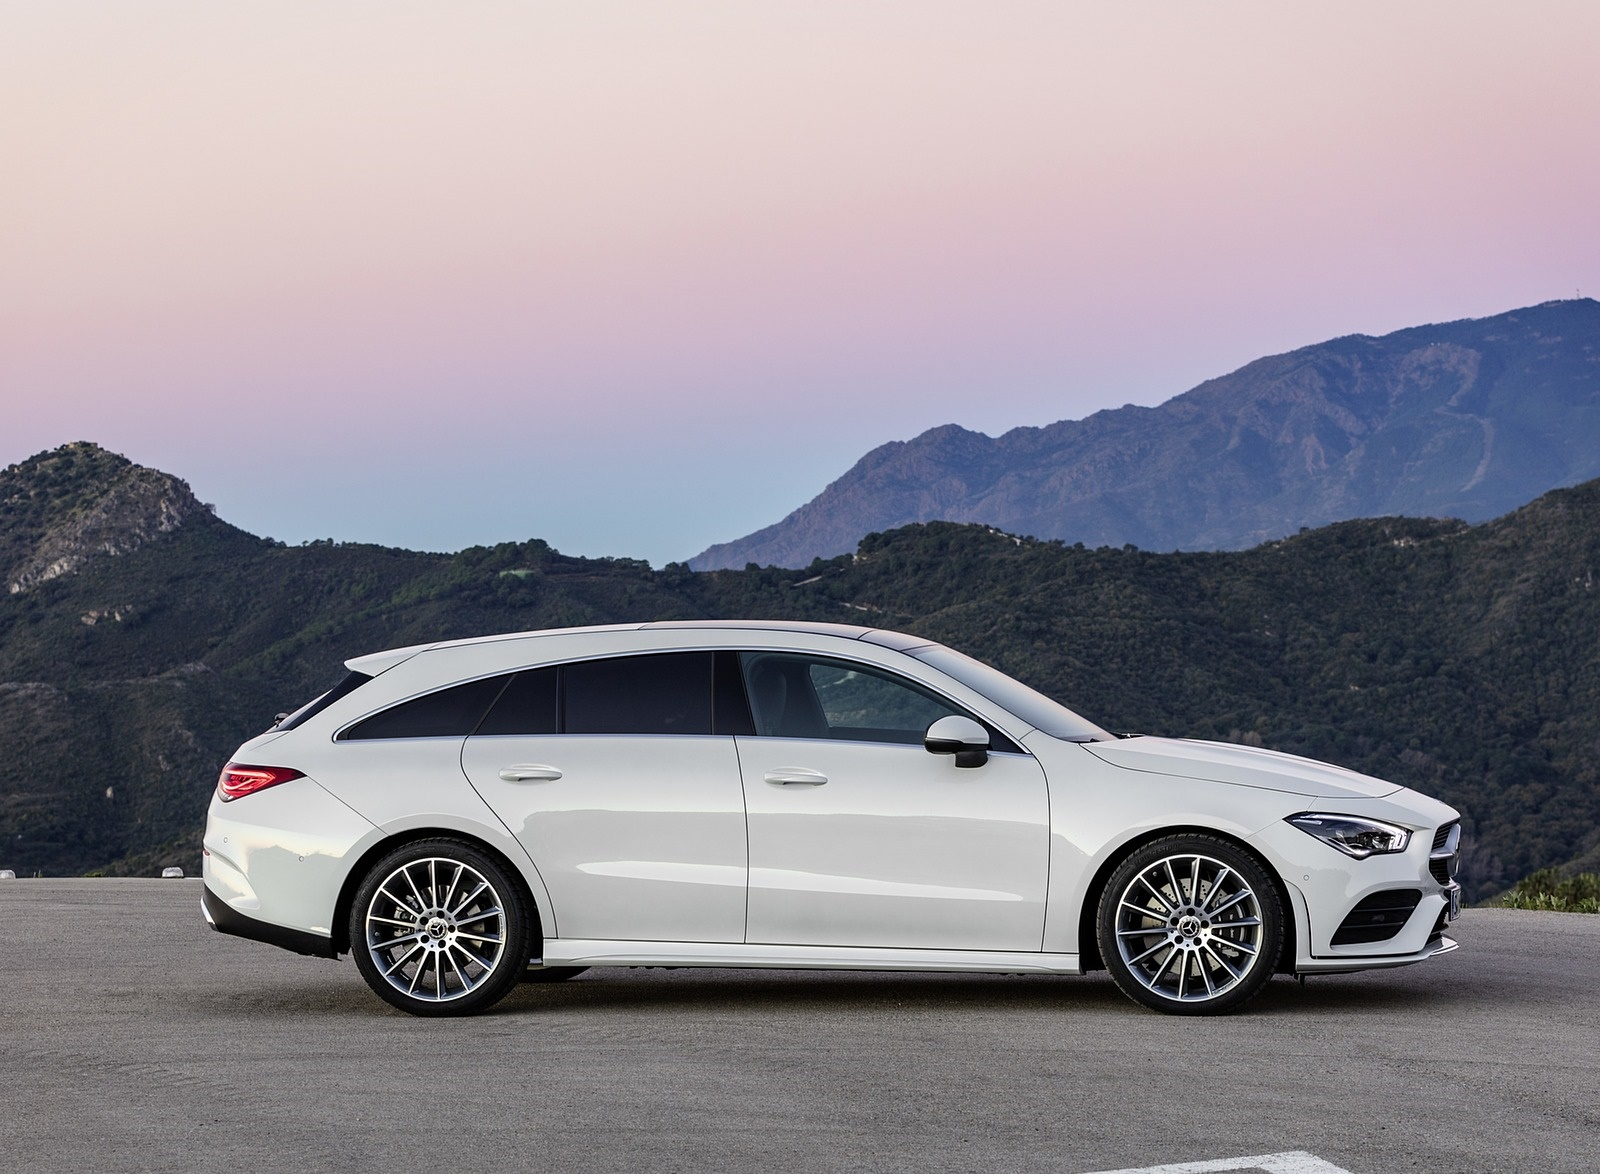 2020 Mercedes-Benz CLA Shooting Brake AMG-Line (Color: Digital White) Side Wallpaper (10)